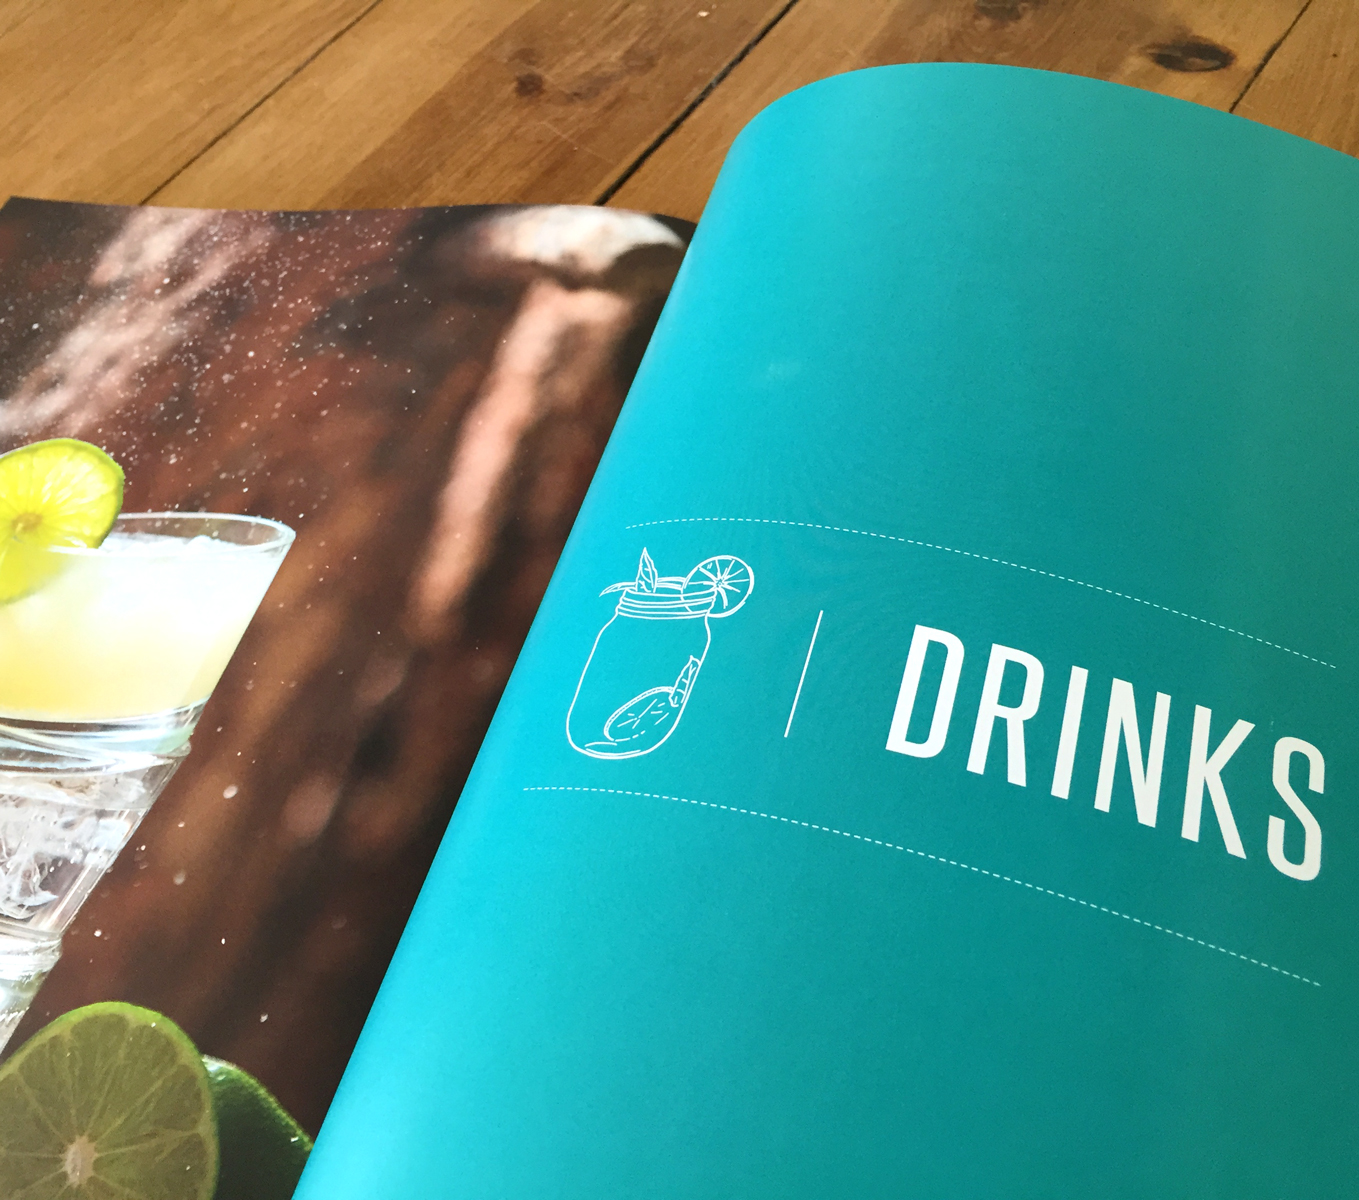 drinks-illustration-pm-cookbook-design